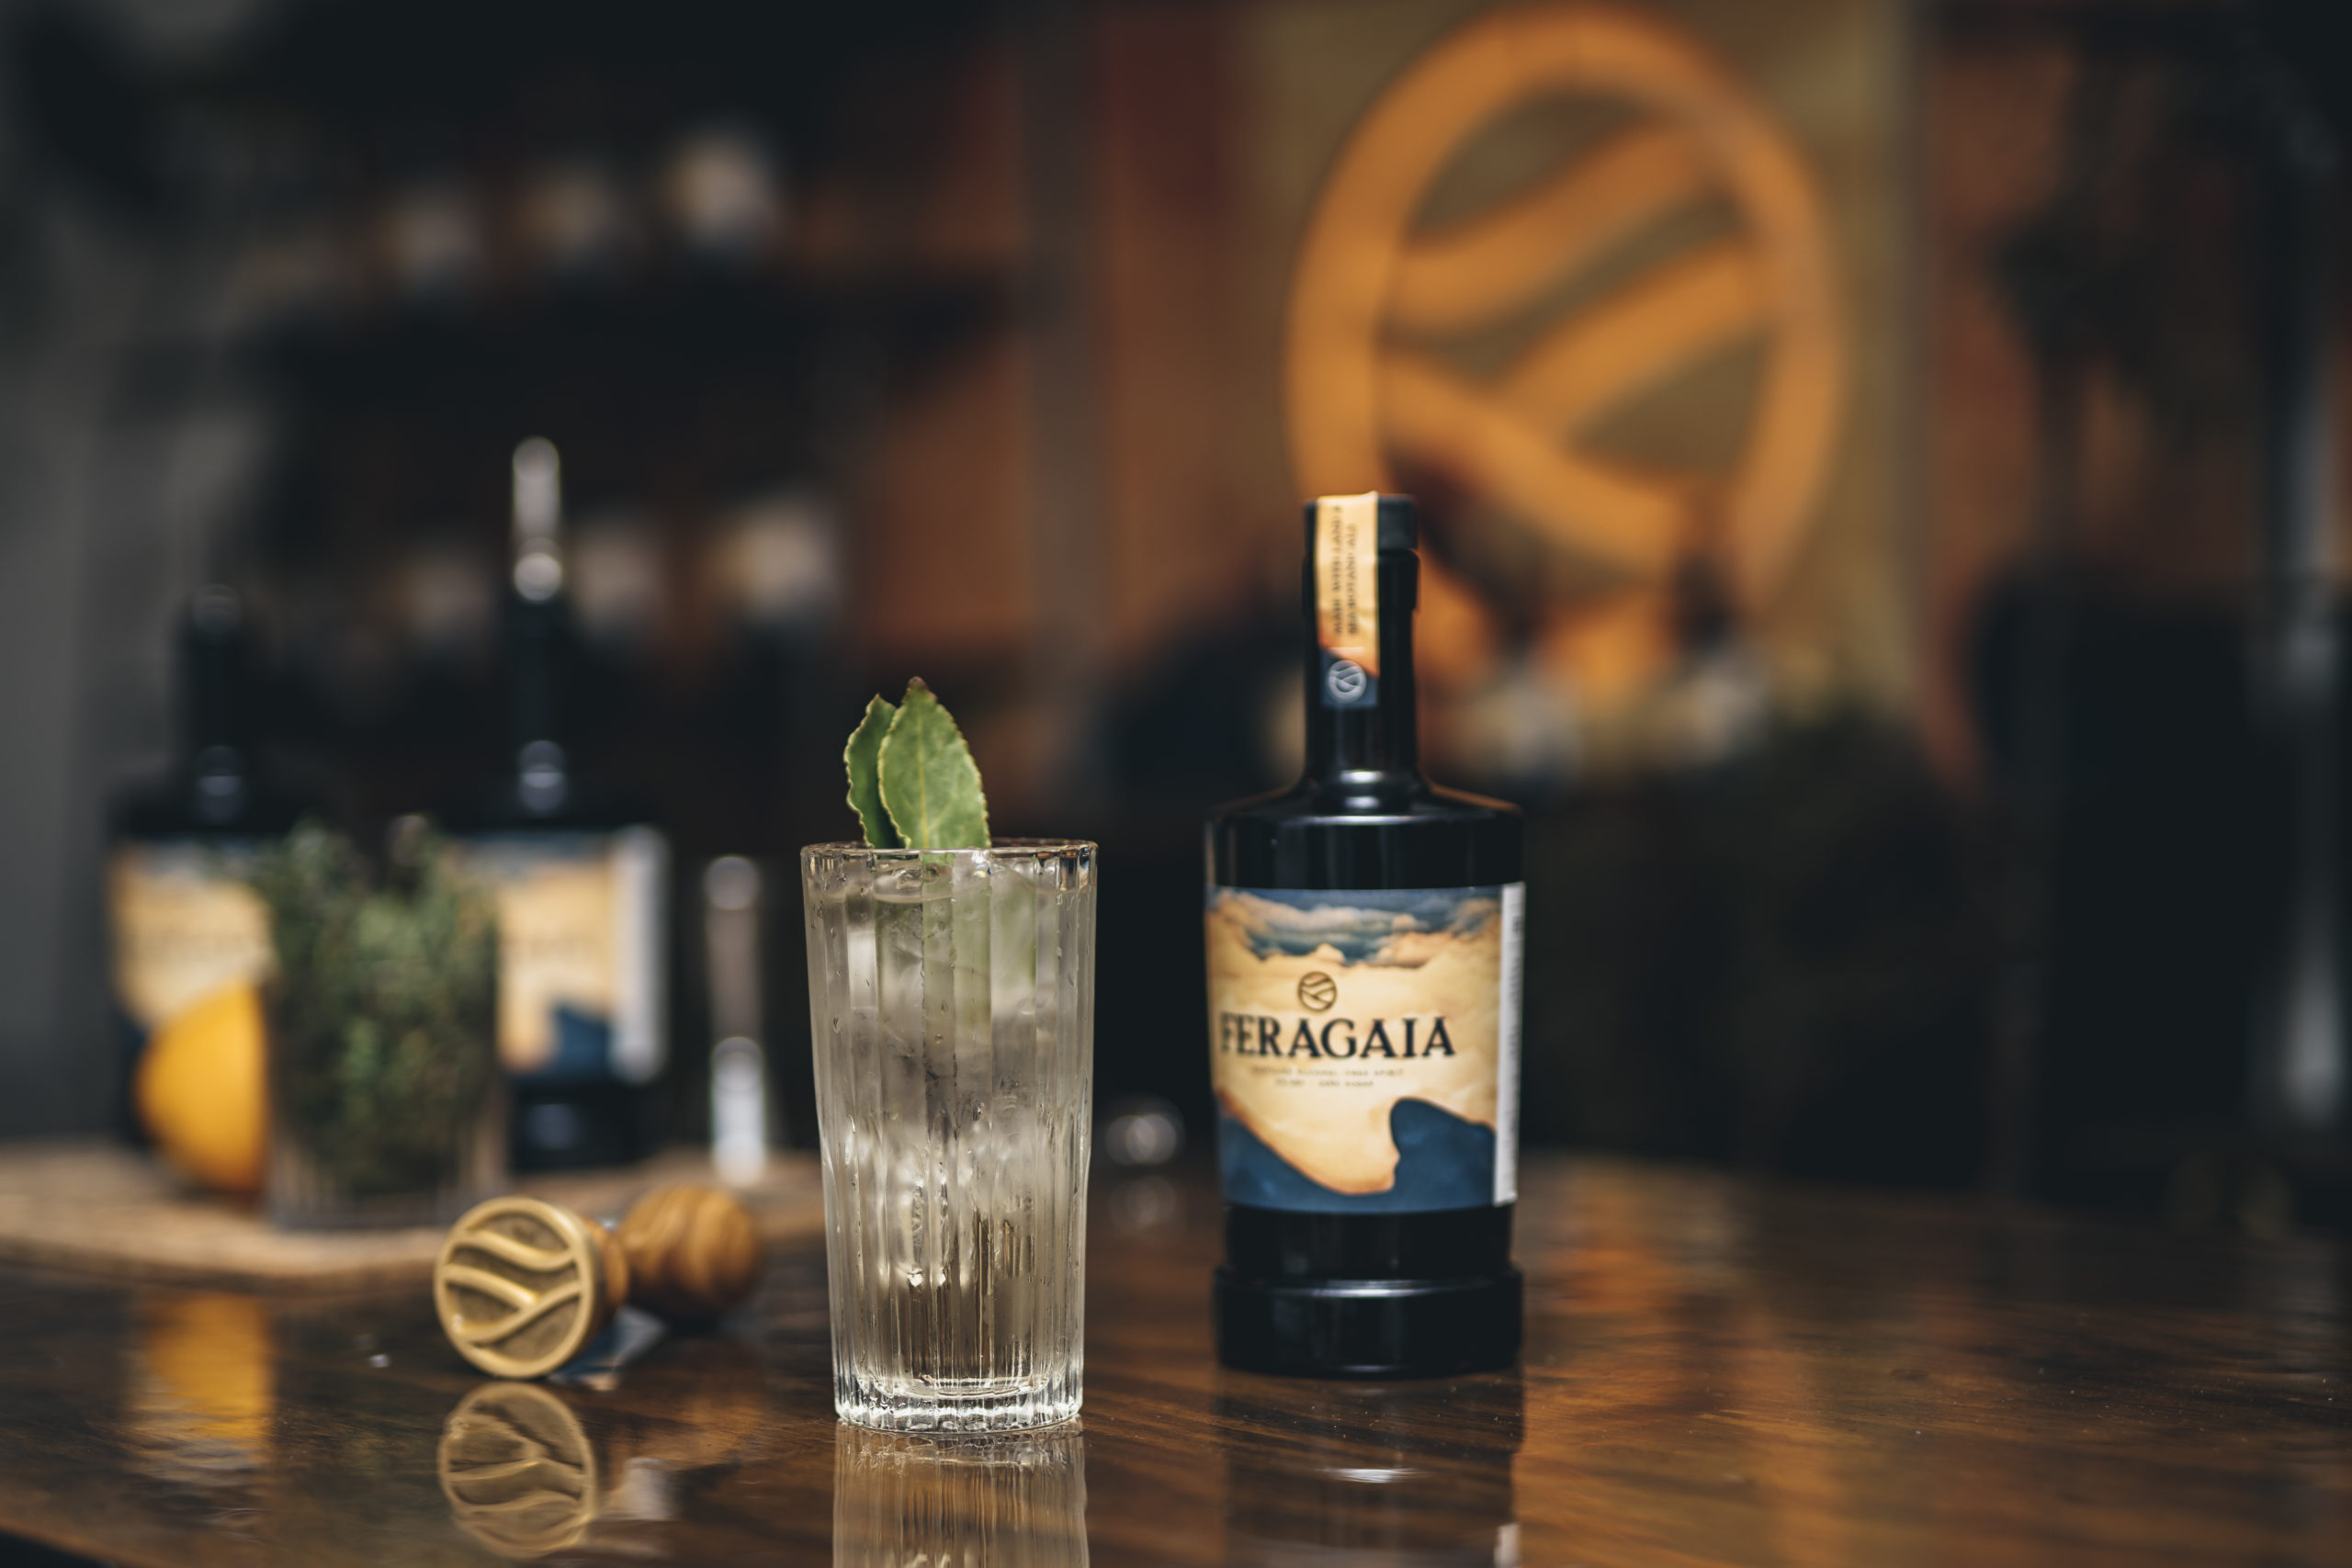 Feragaia is a new alcohol-free spirit distilled in Scotland.